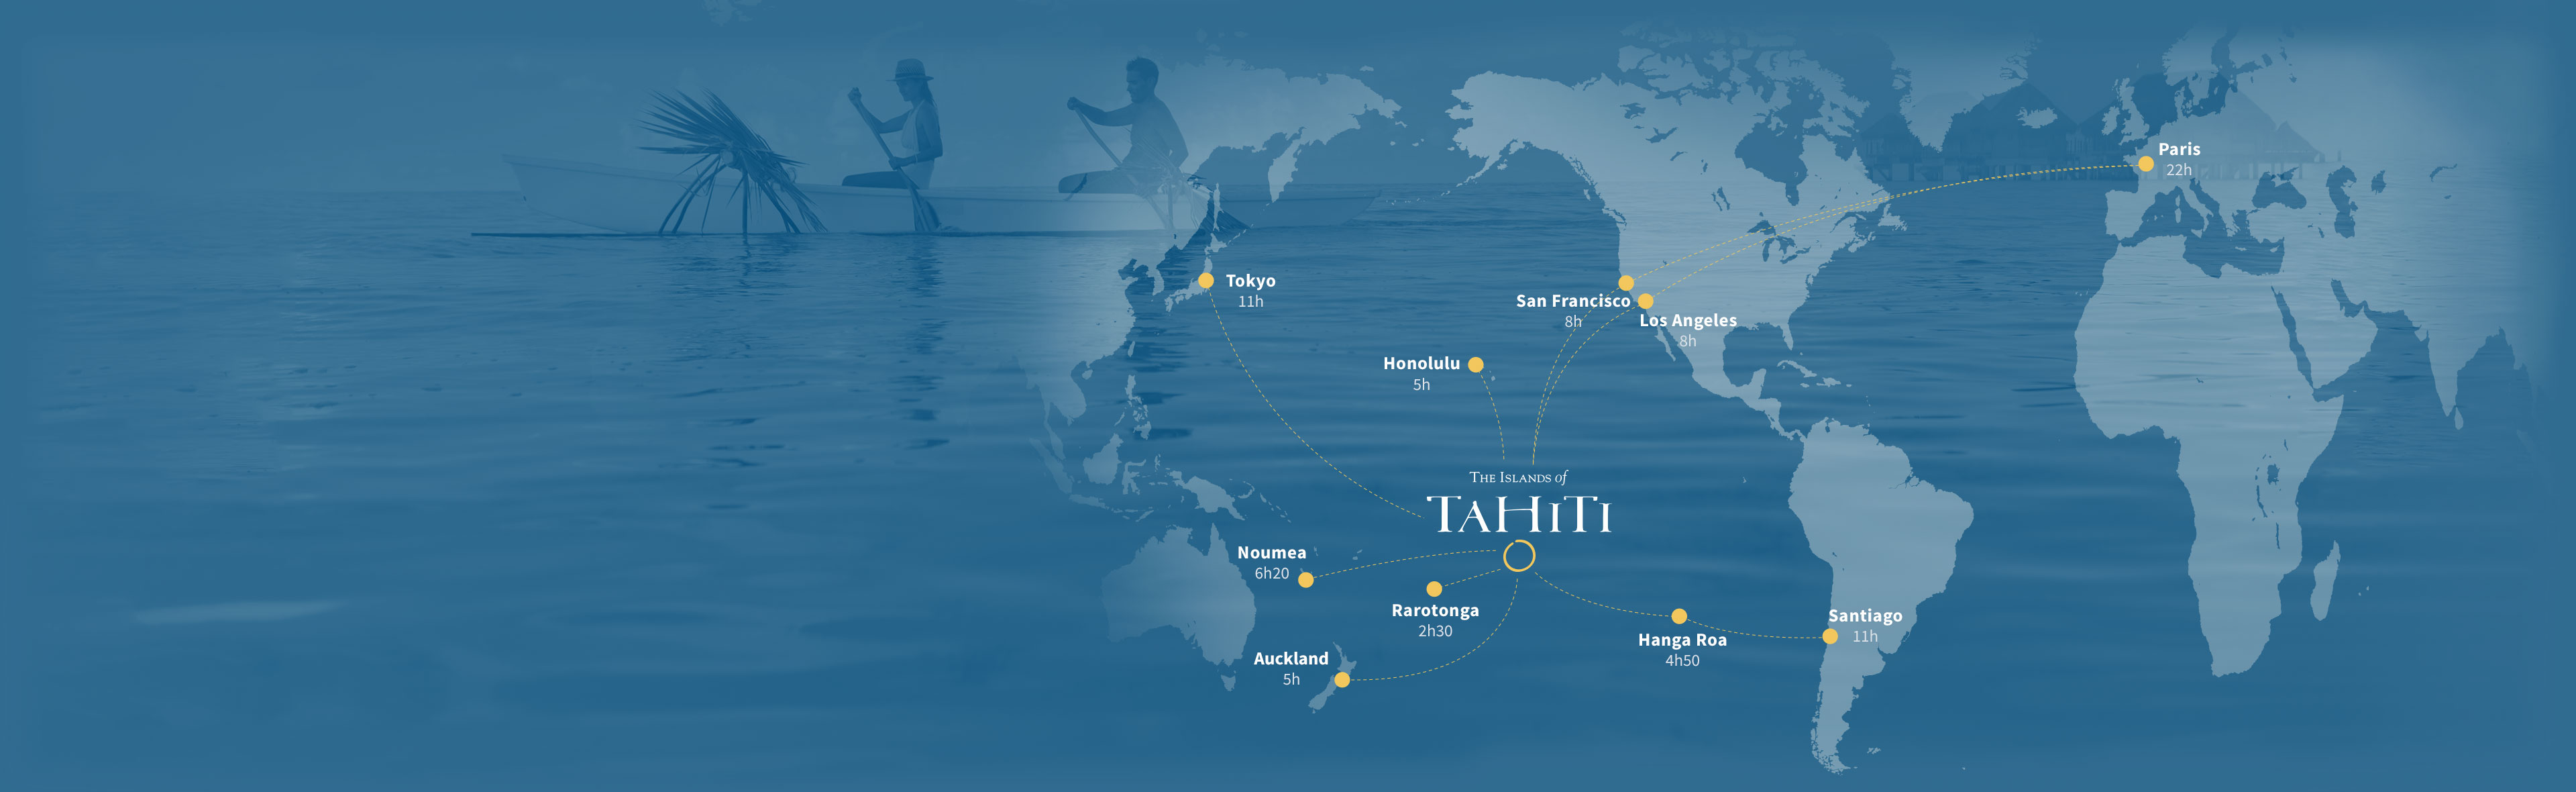 tahiti-homepage-map-d_english   Tahiti Tourisme on map of seychelles, map of bali, map of switzerland, map of fiji, map of moorea, map of brazil, map of thailand, map of costa rica, map of pacific ocean, map of bora bora, map of malaysia, map of south pacific, map of bahamas, map of carribean, map of spain, map of hawaii, map of kwajalein, map of new zealand, map of french polynesia, map of austrailia,